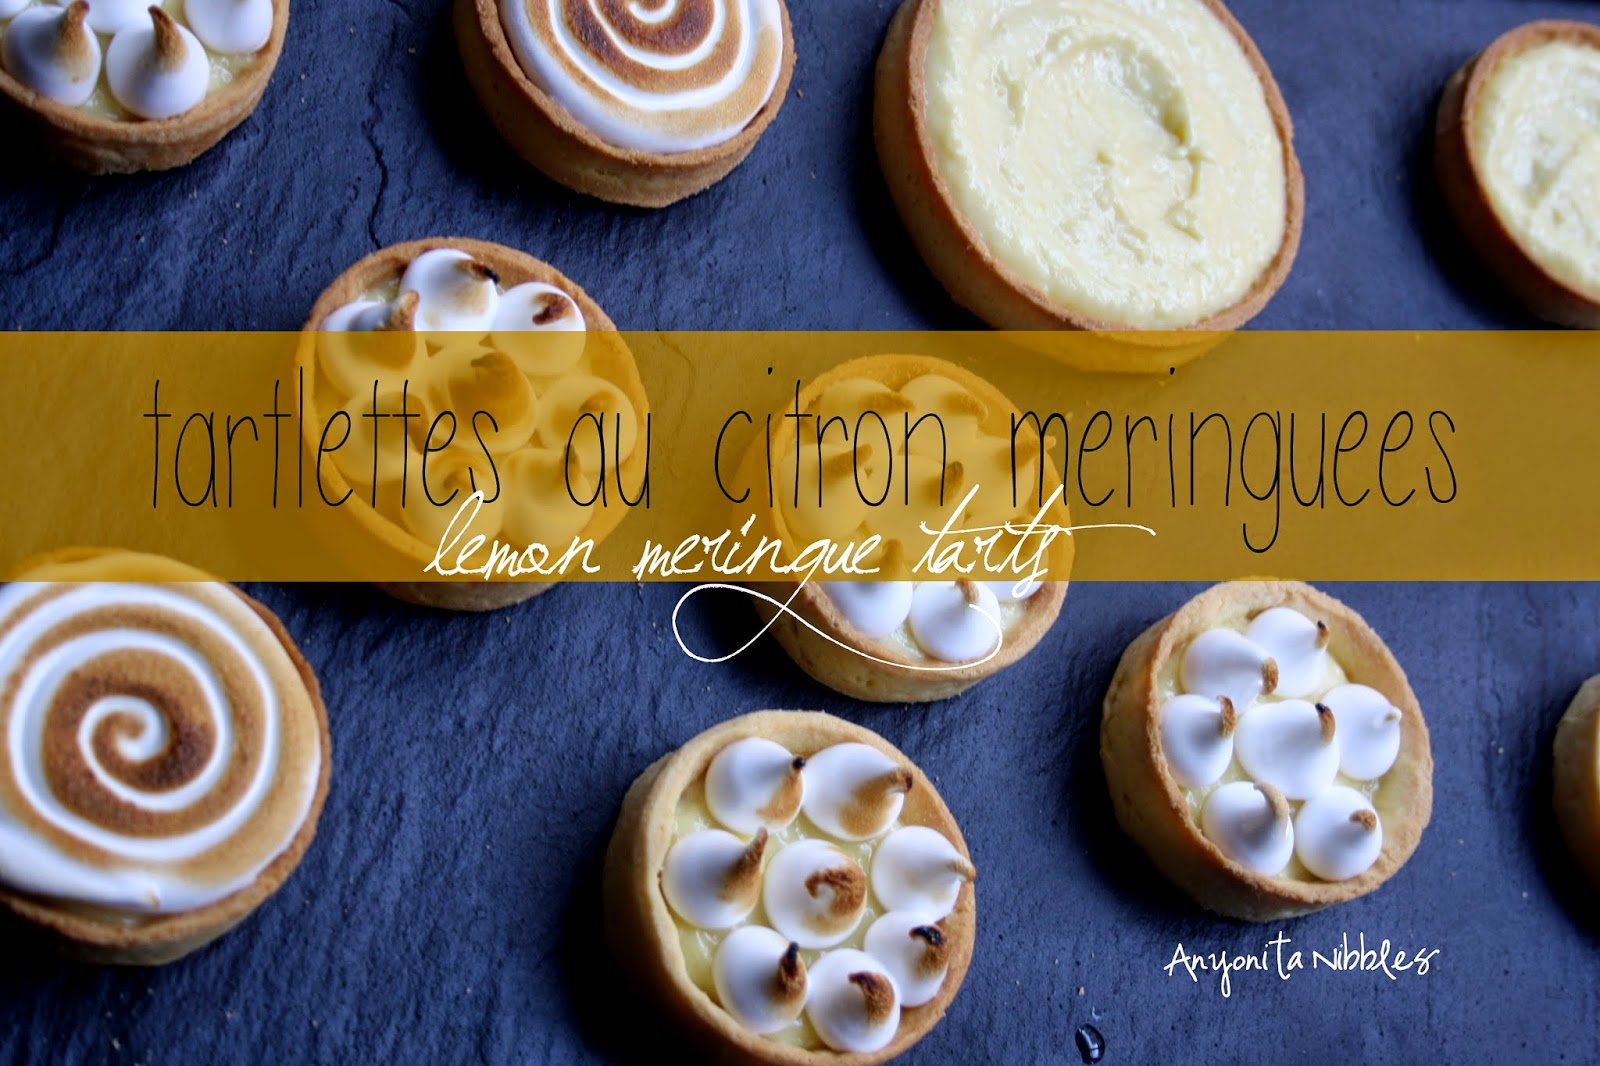 Lemon Meringue Tarts by Anyonita Nibbles